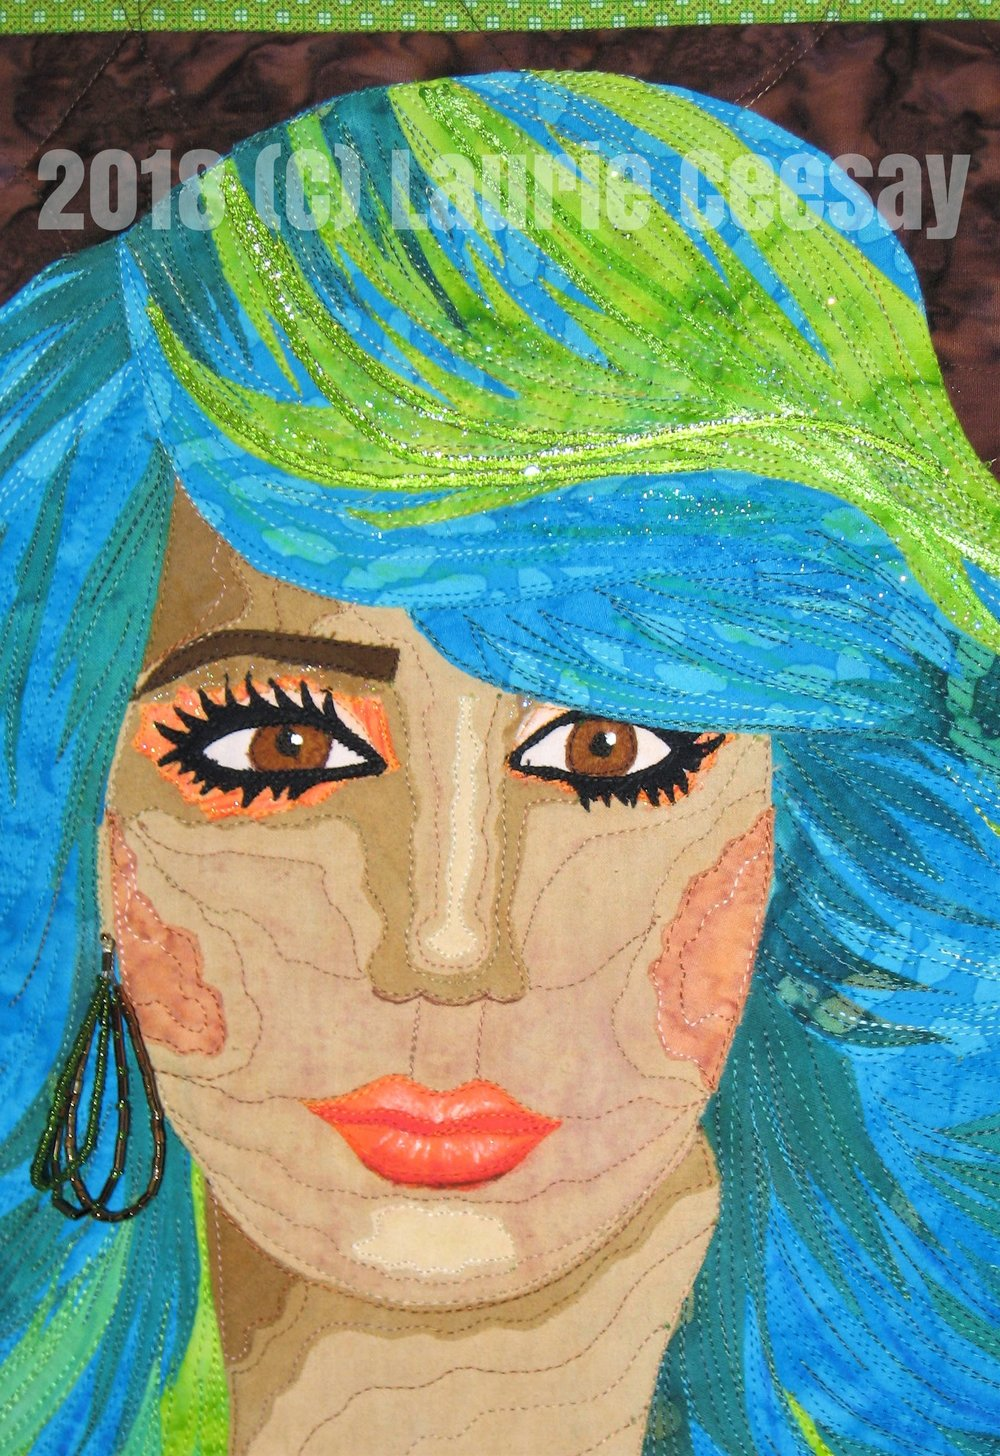 The face was embellished with fabric markers, fabric paint, glitter nail polish, and a real earring from my jewelry box. I intend to enter this quilt in a few quilt contests. When I find out when the TV show is ready for viewing on TV I will let people know.